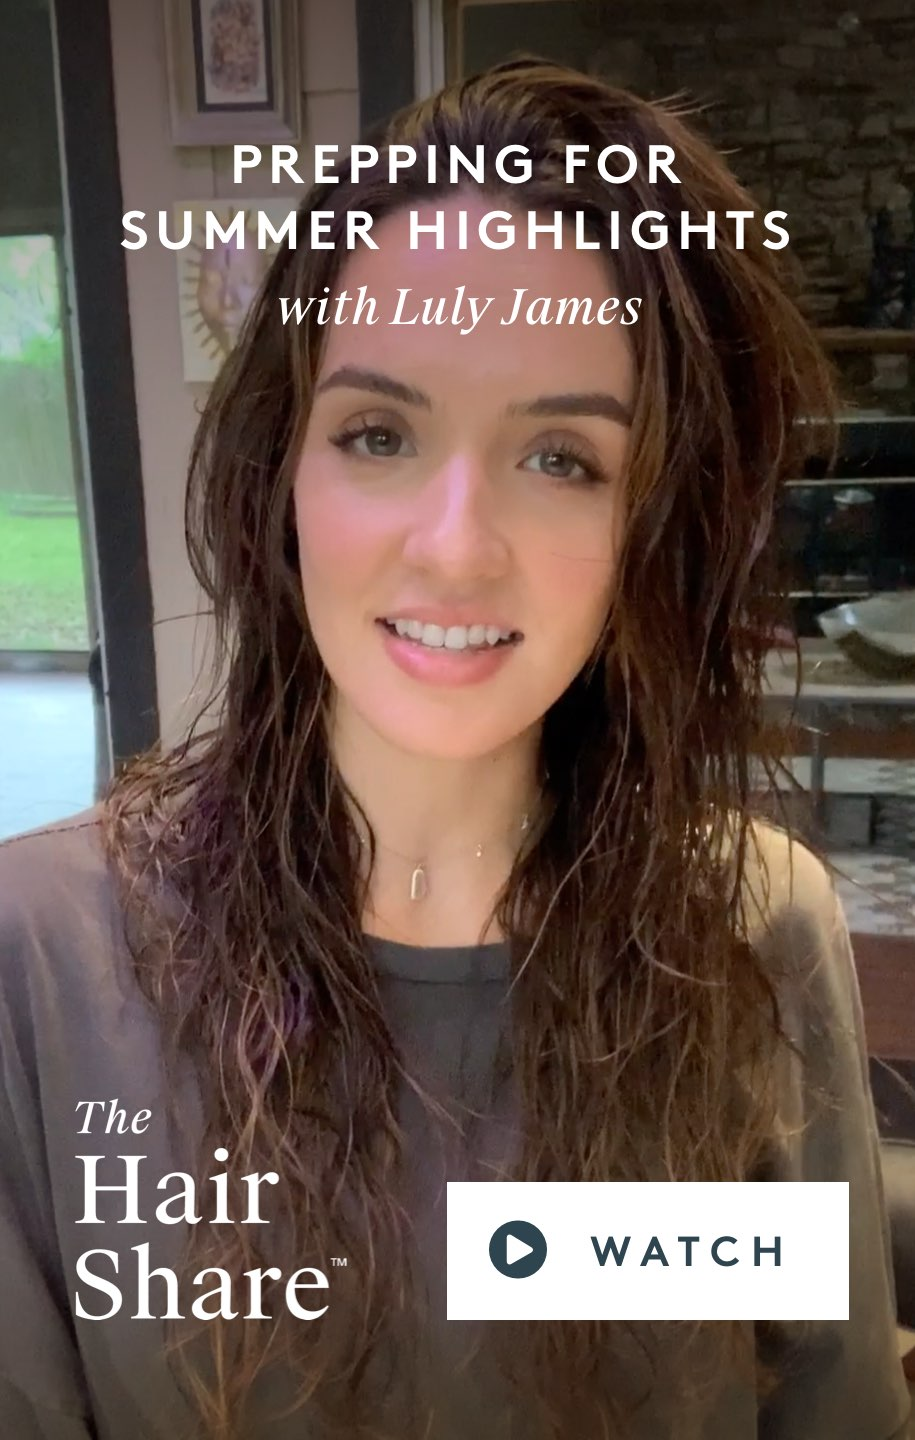 Prepping for Summer Highlights with Luly James